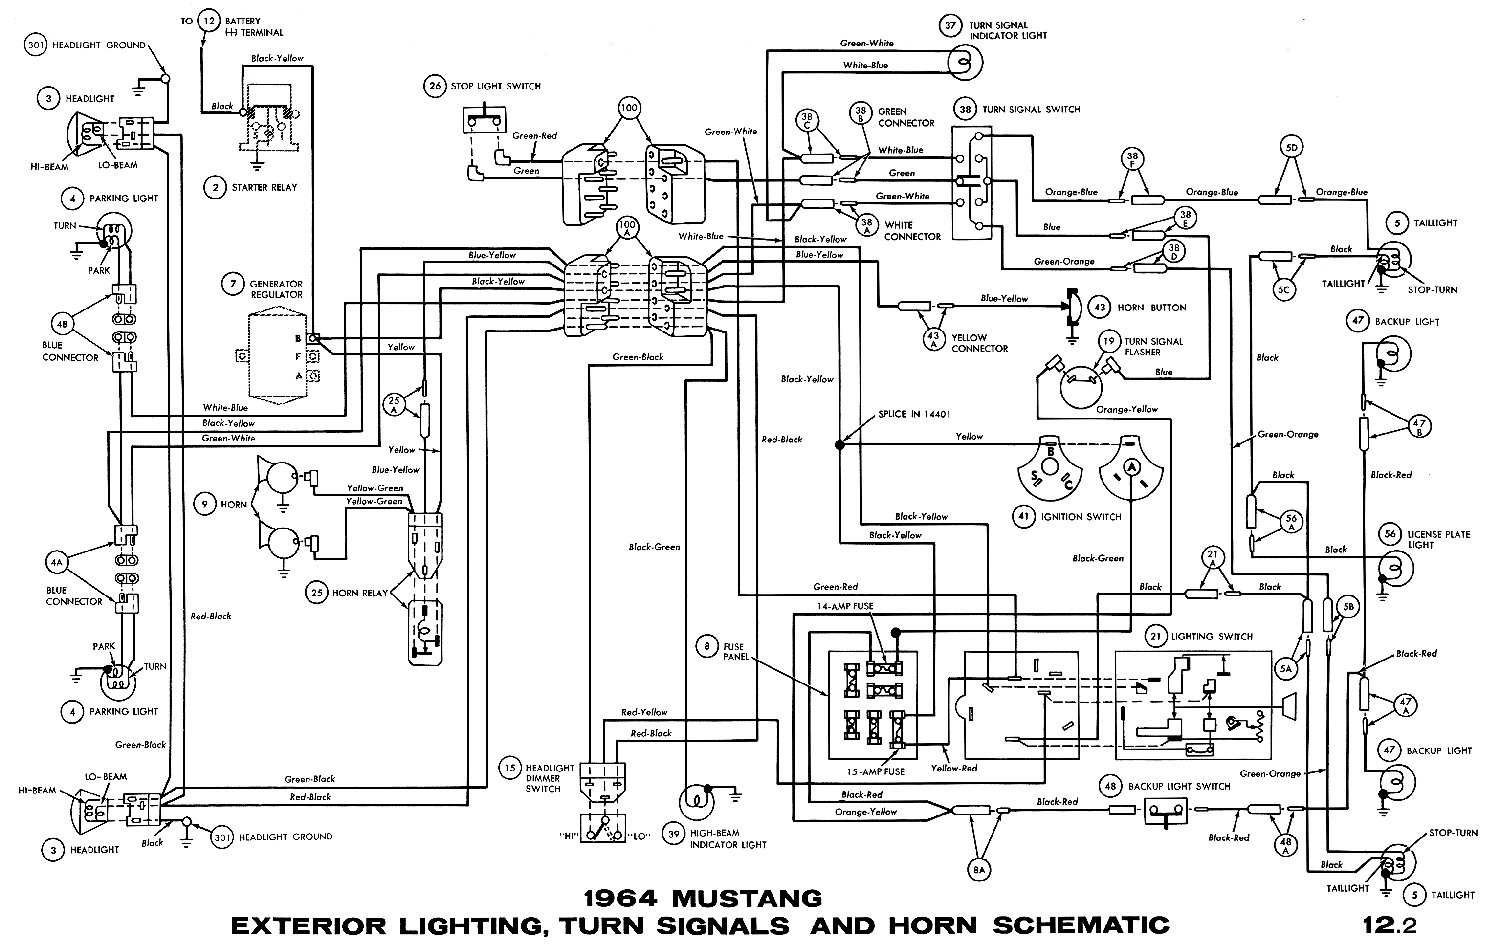 hight resolution of 1965 mustang fuse diagram wiring diagram paper 1964 mustang fuse box diagram 1964 mustang fuse diagram